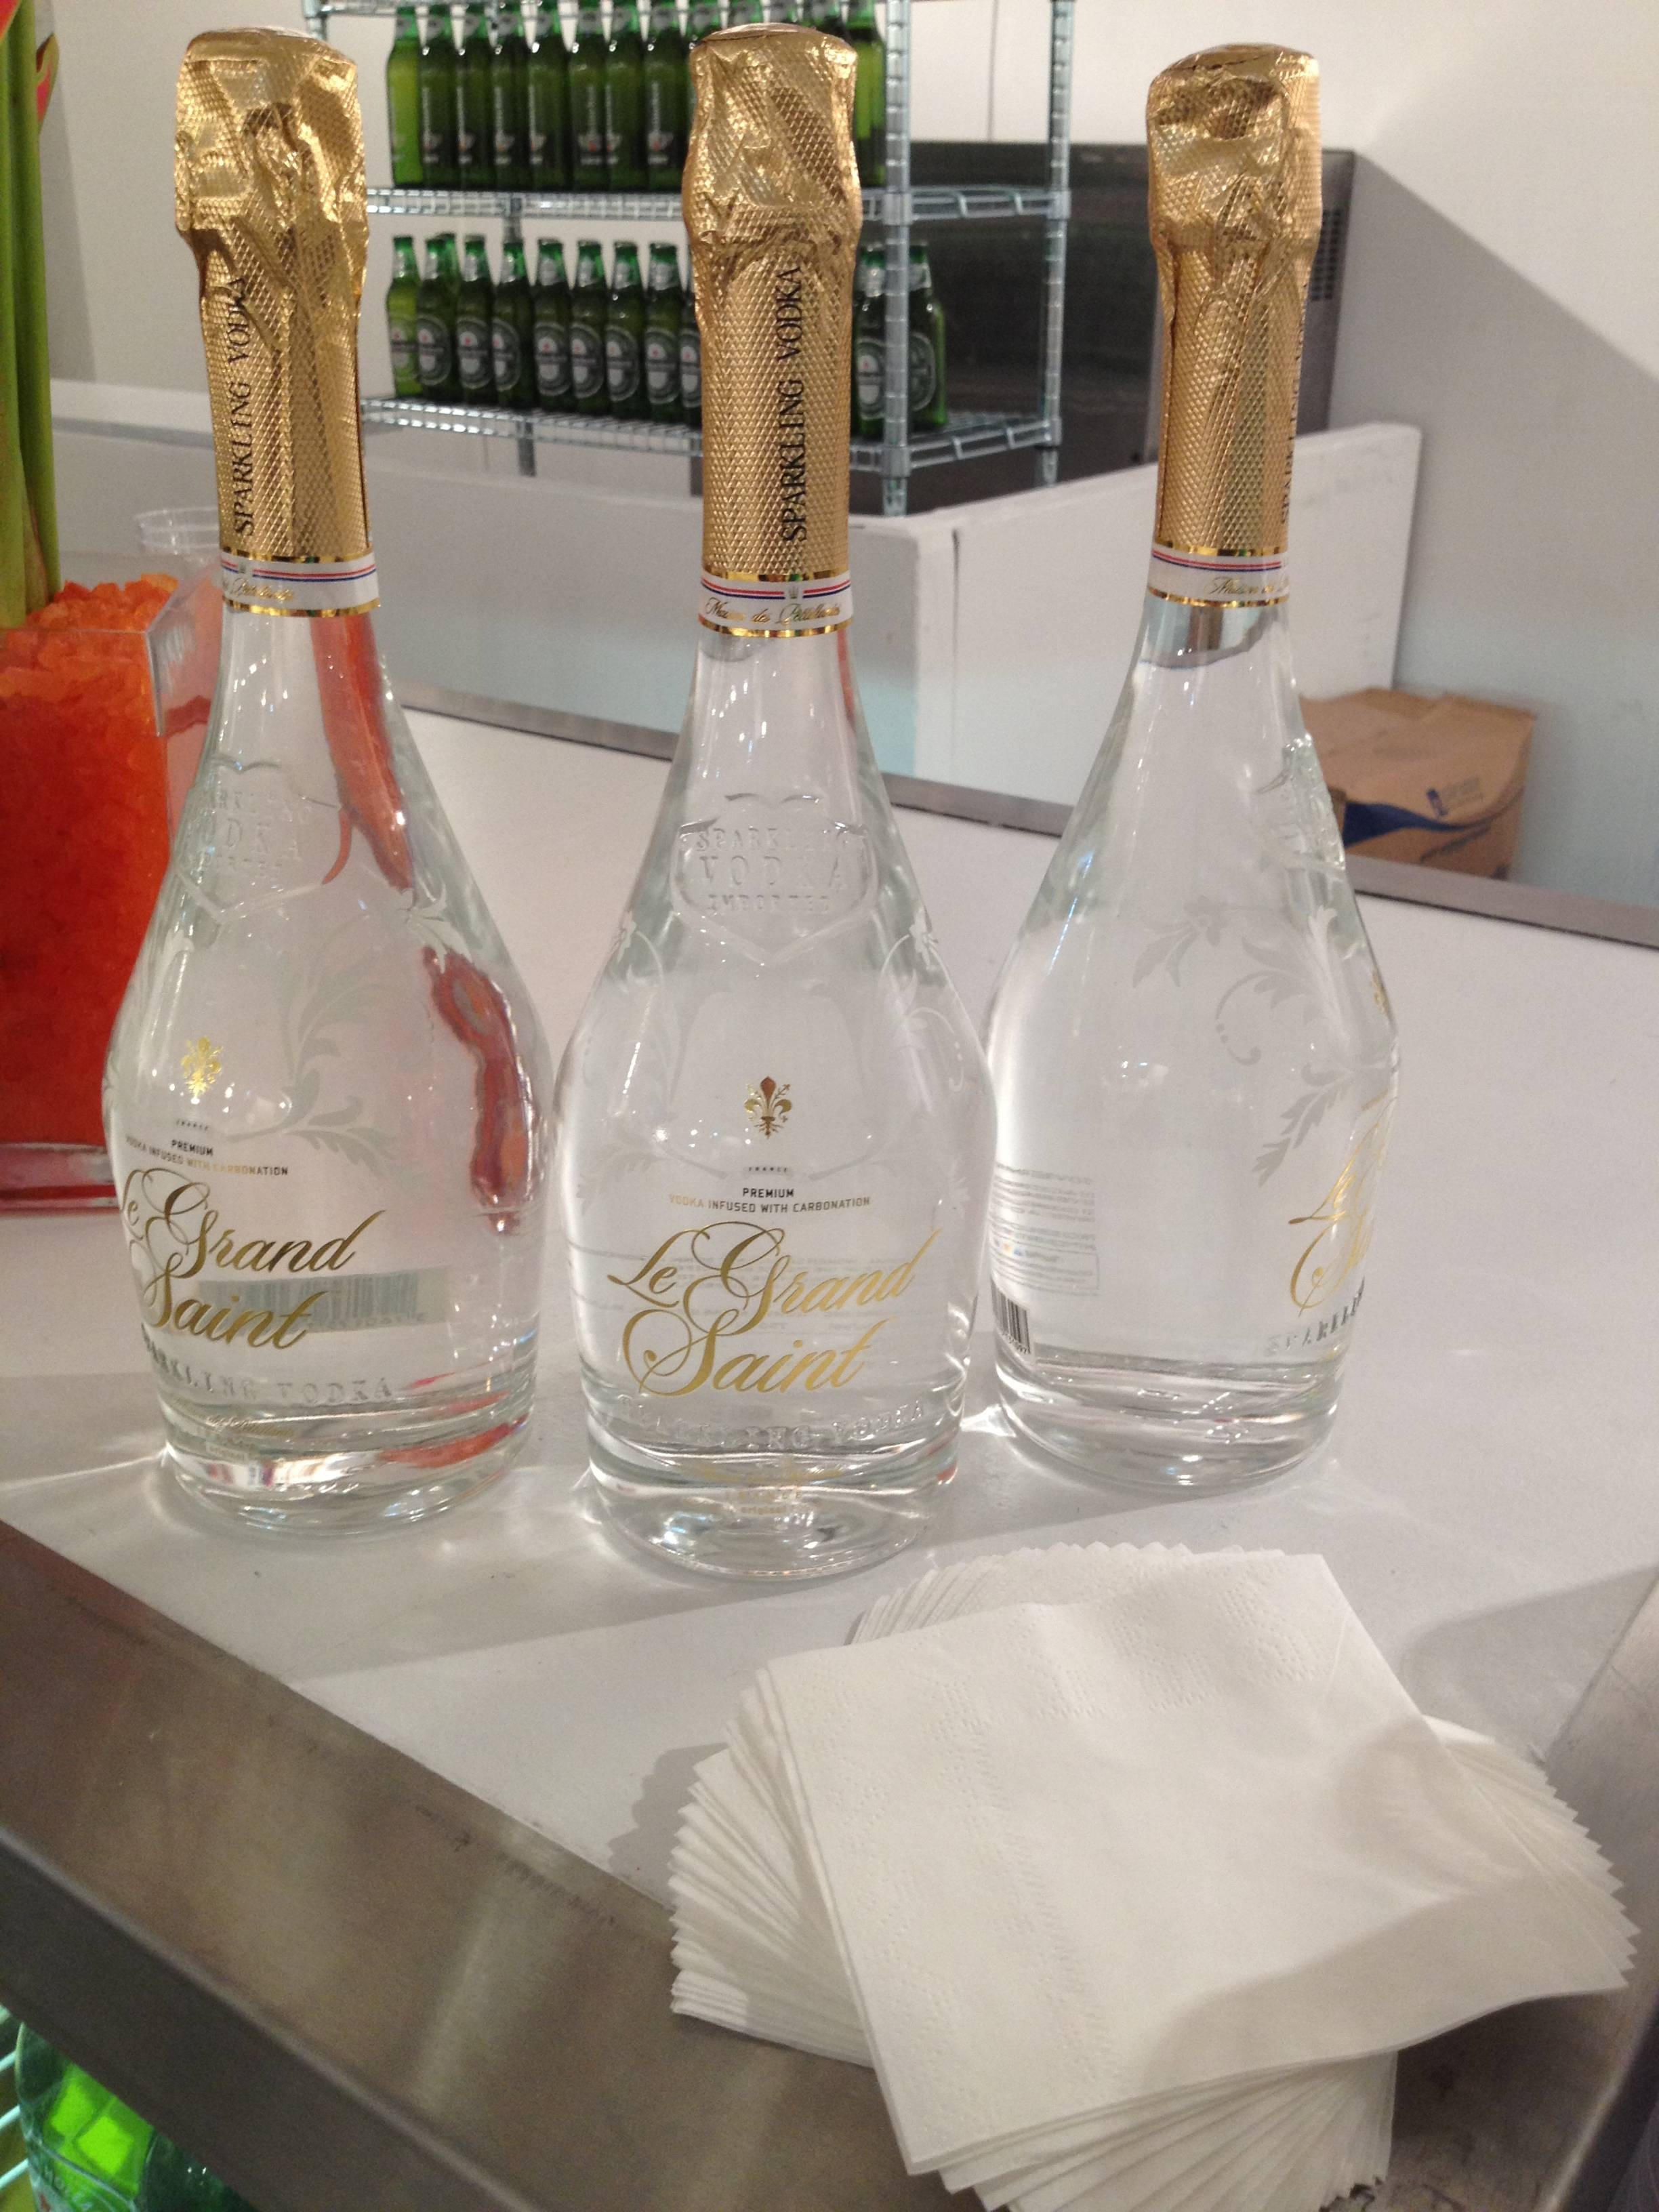 Le Grand SaintSparkling Vodka